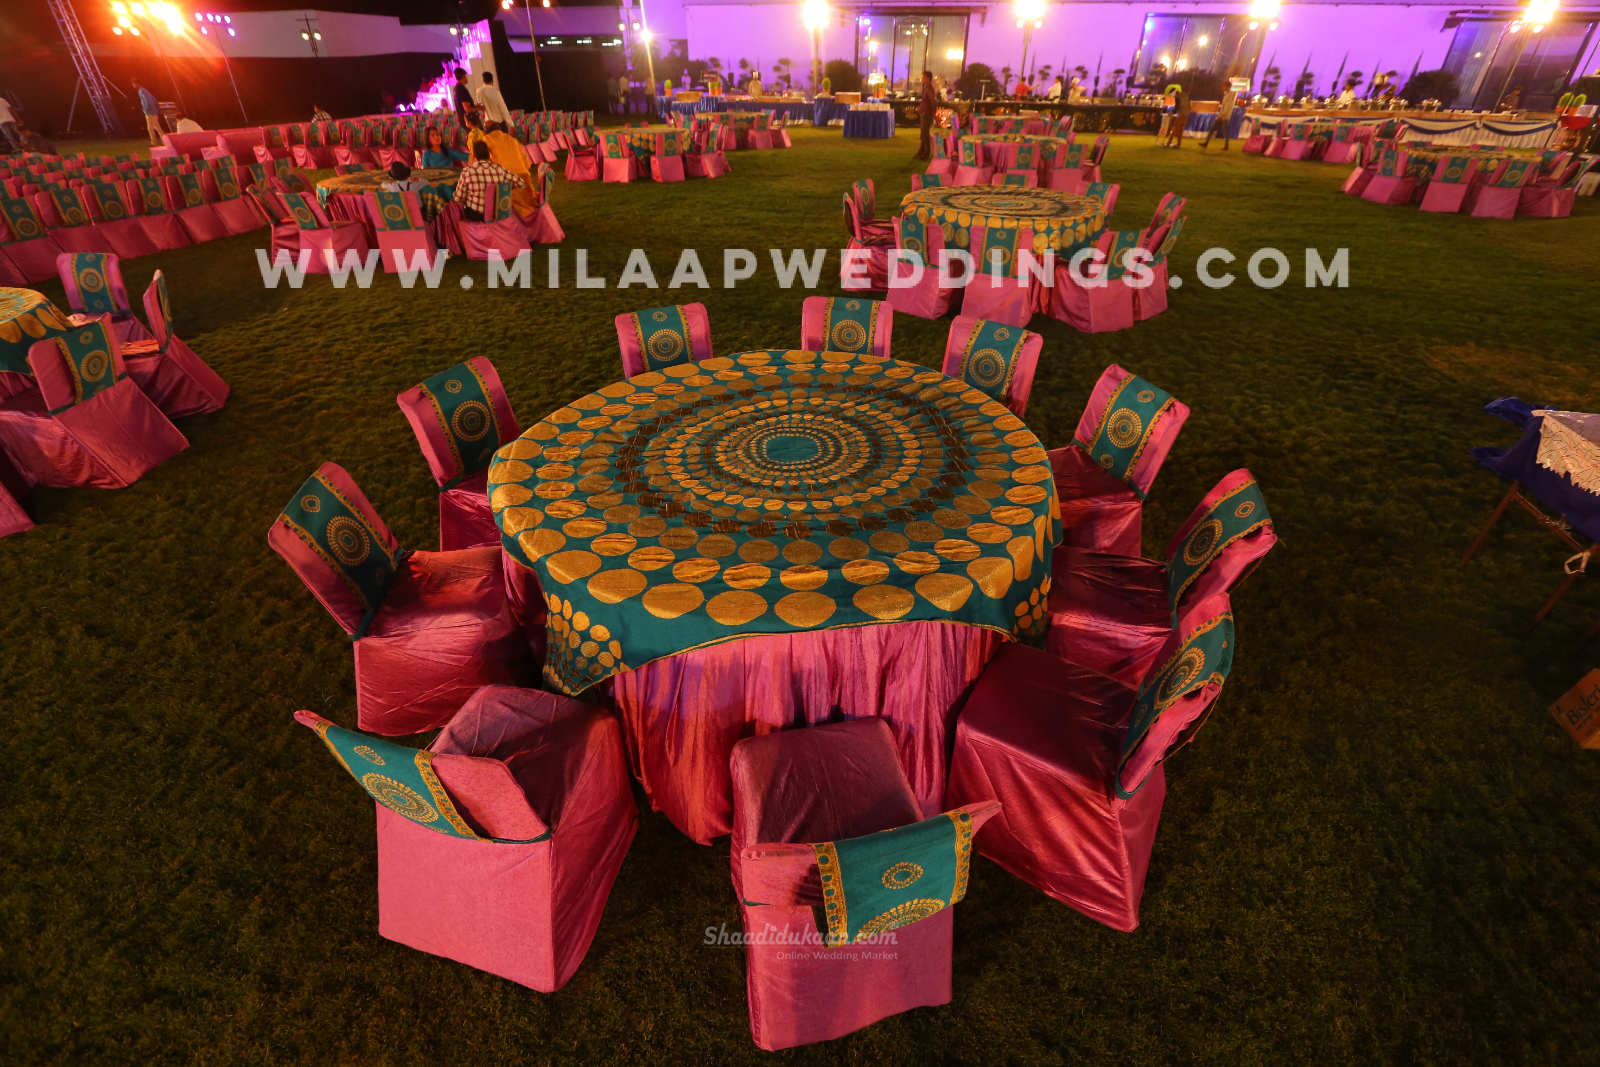 Milaap Weddings